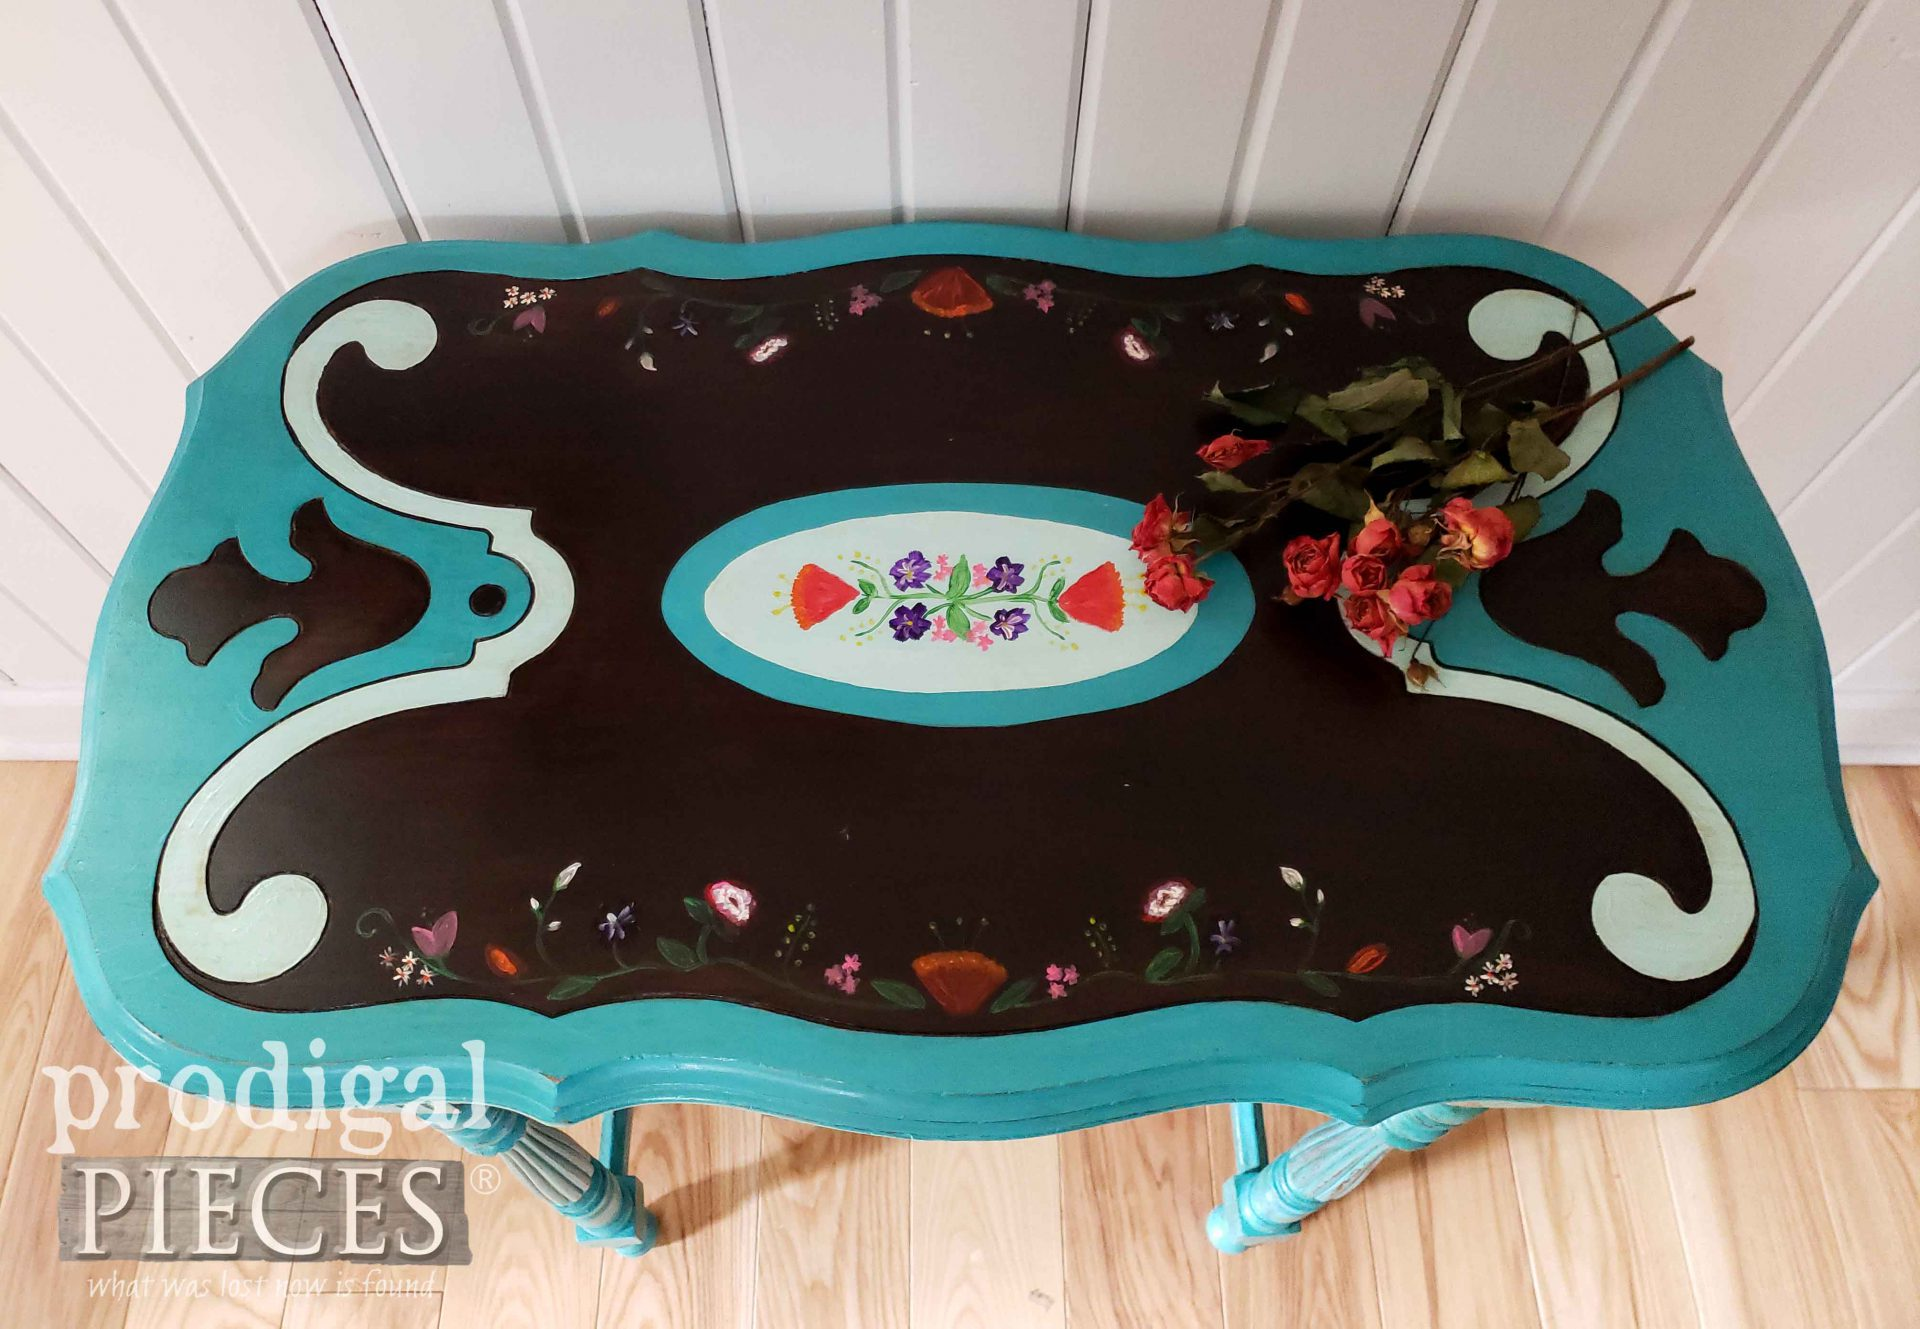 Hand-Painted Floral Top on Antique Table by Larissa of Prodigal Pieces | prodigalpieces.com #prodigalpieces #furniture #home #homedecor #diy